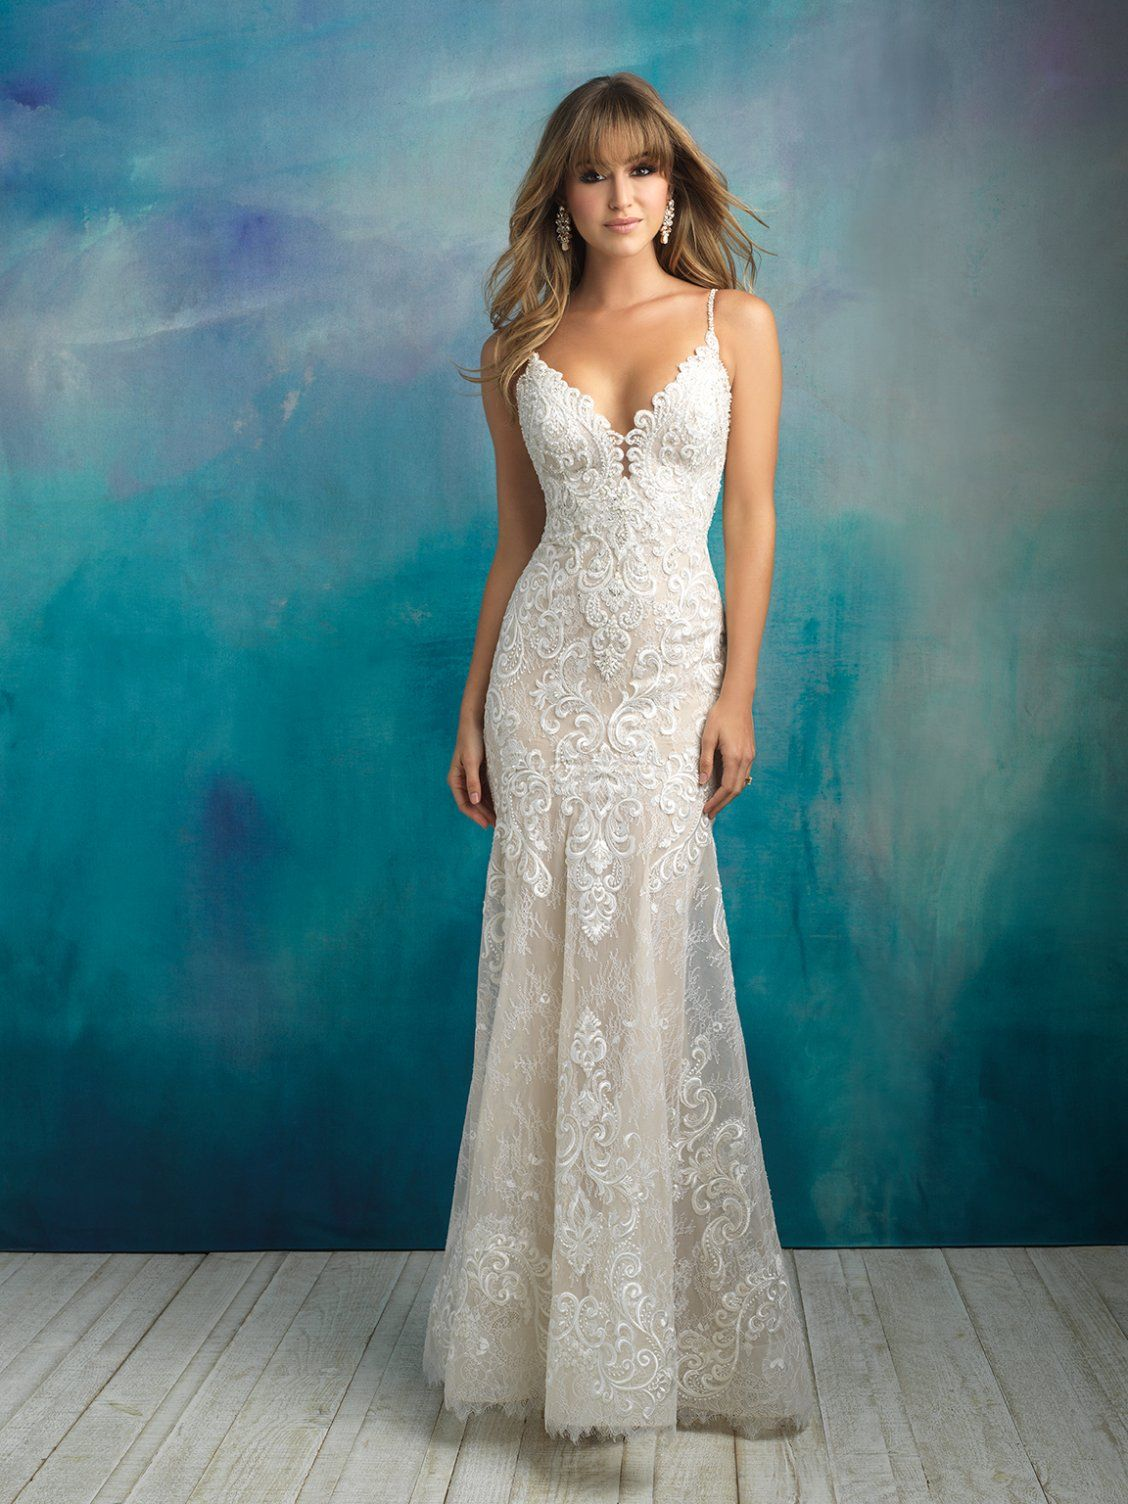 Stunning Sheath Lace Gown Allure Bridals 9501 Softly Unfurling Embroidered Appliques Sca Sheath Wedding Dress Lace Allure Wedding Dresses Allure Bridal